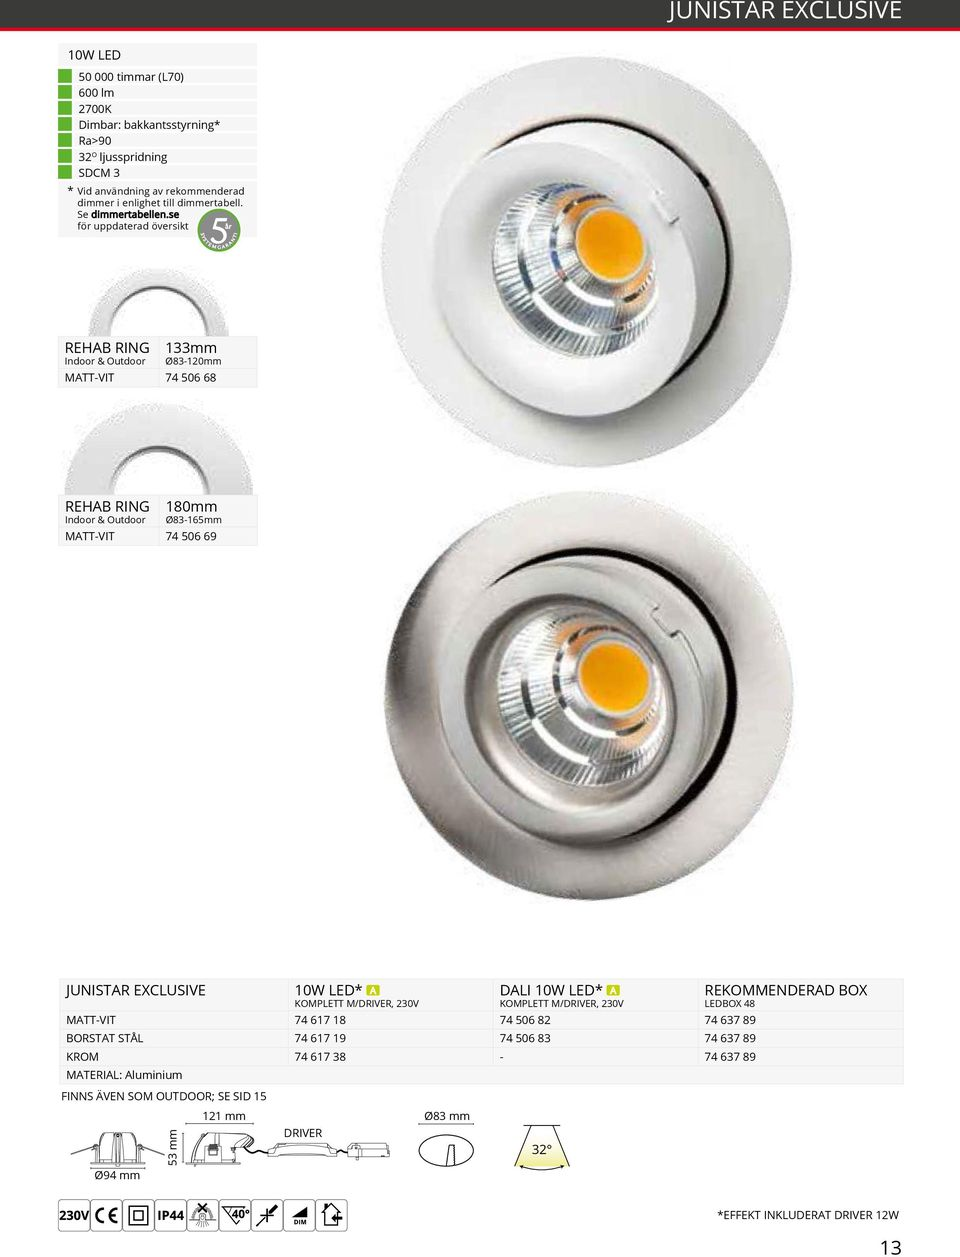 se för uppdaterad översikt år 5 REHAB RING Indoor & Outdoor 133mm Ø83-120mm MATT-VIT 74 506 68 REHAB RING Indoor & Outdoor 180mm Ø83-165mm MATT-VIT 74 506 69 JUNISTAR EXCLUSIVE 10W LED*